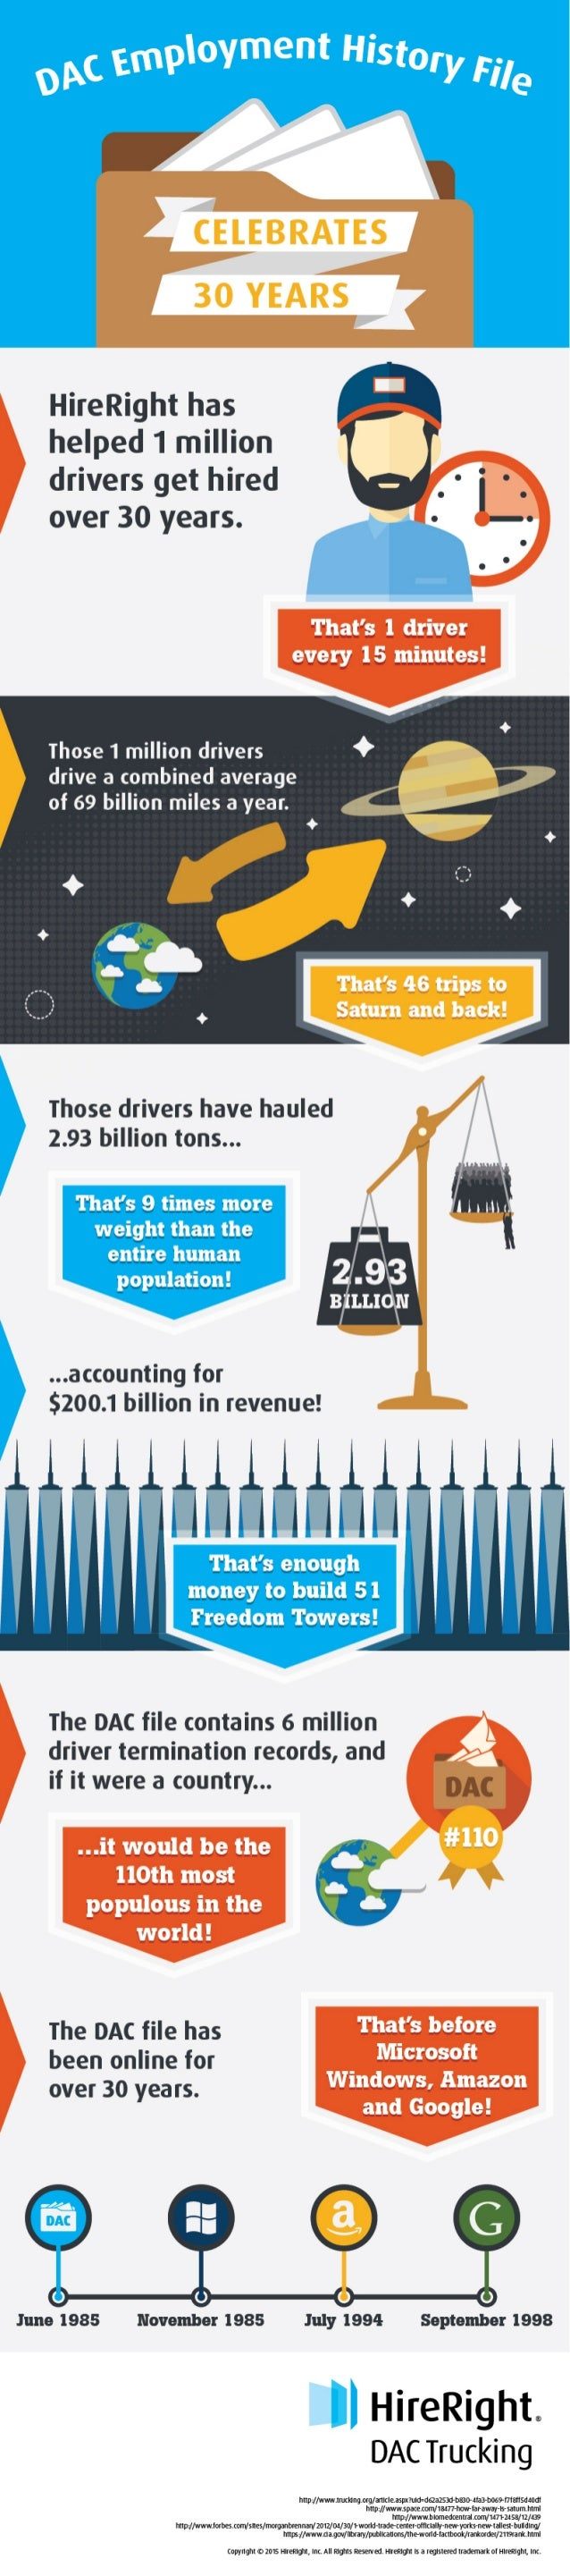 Dac Employment History File Infographic